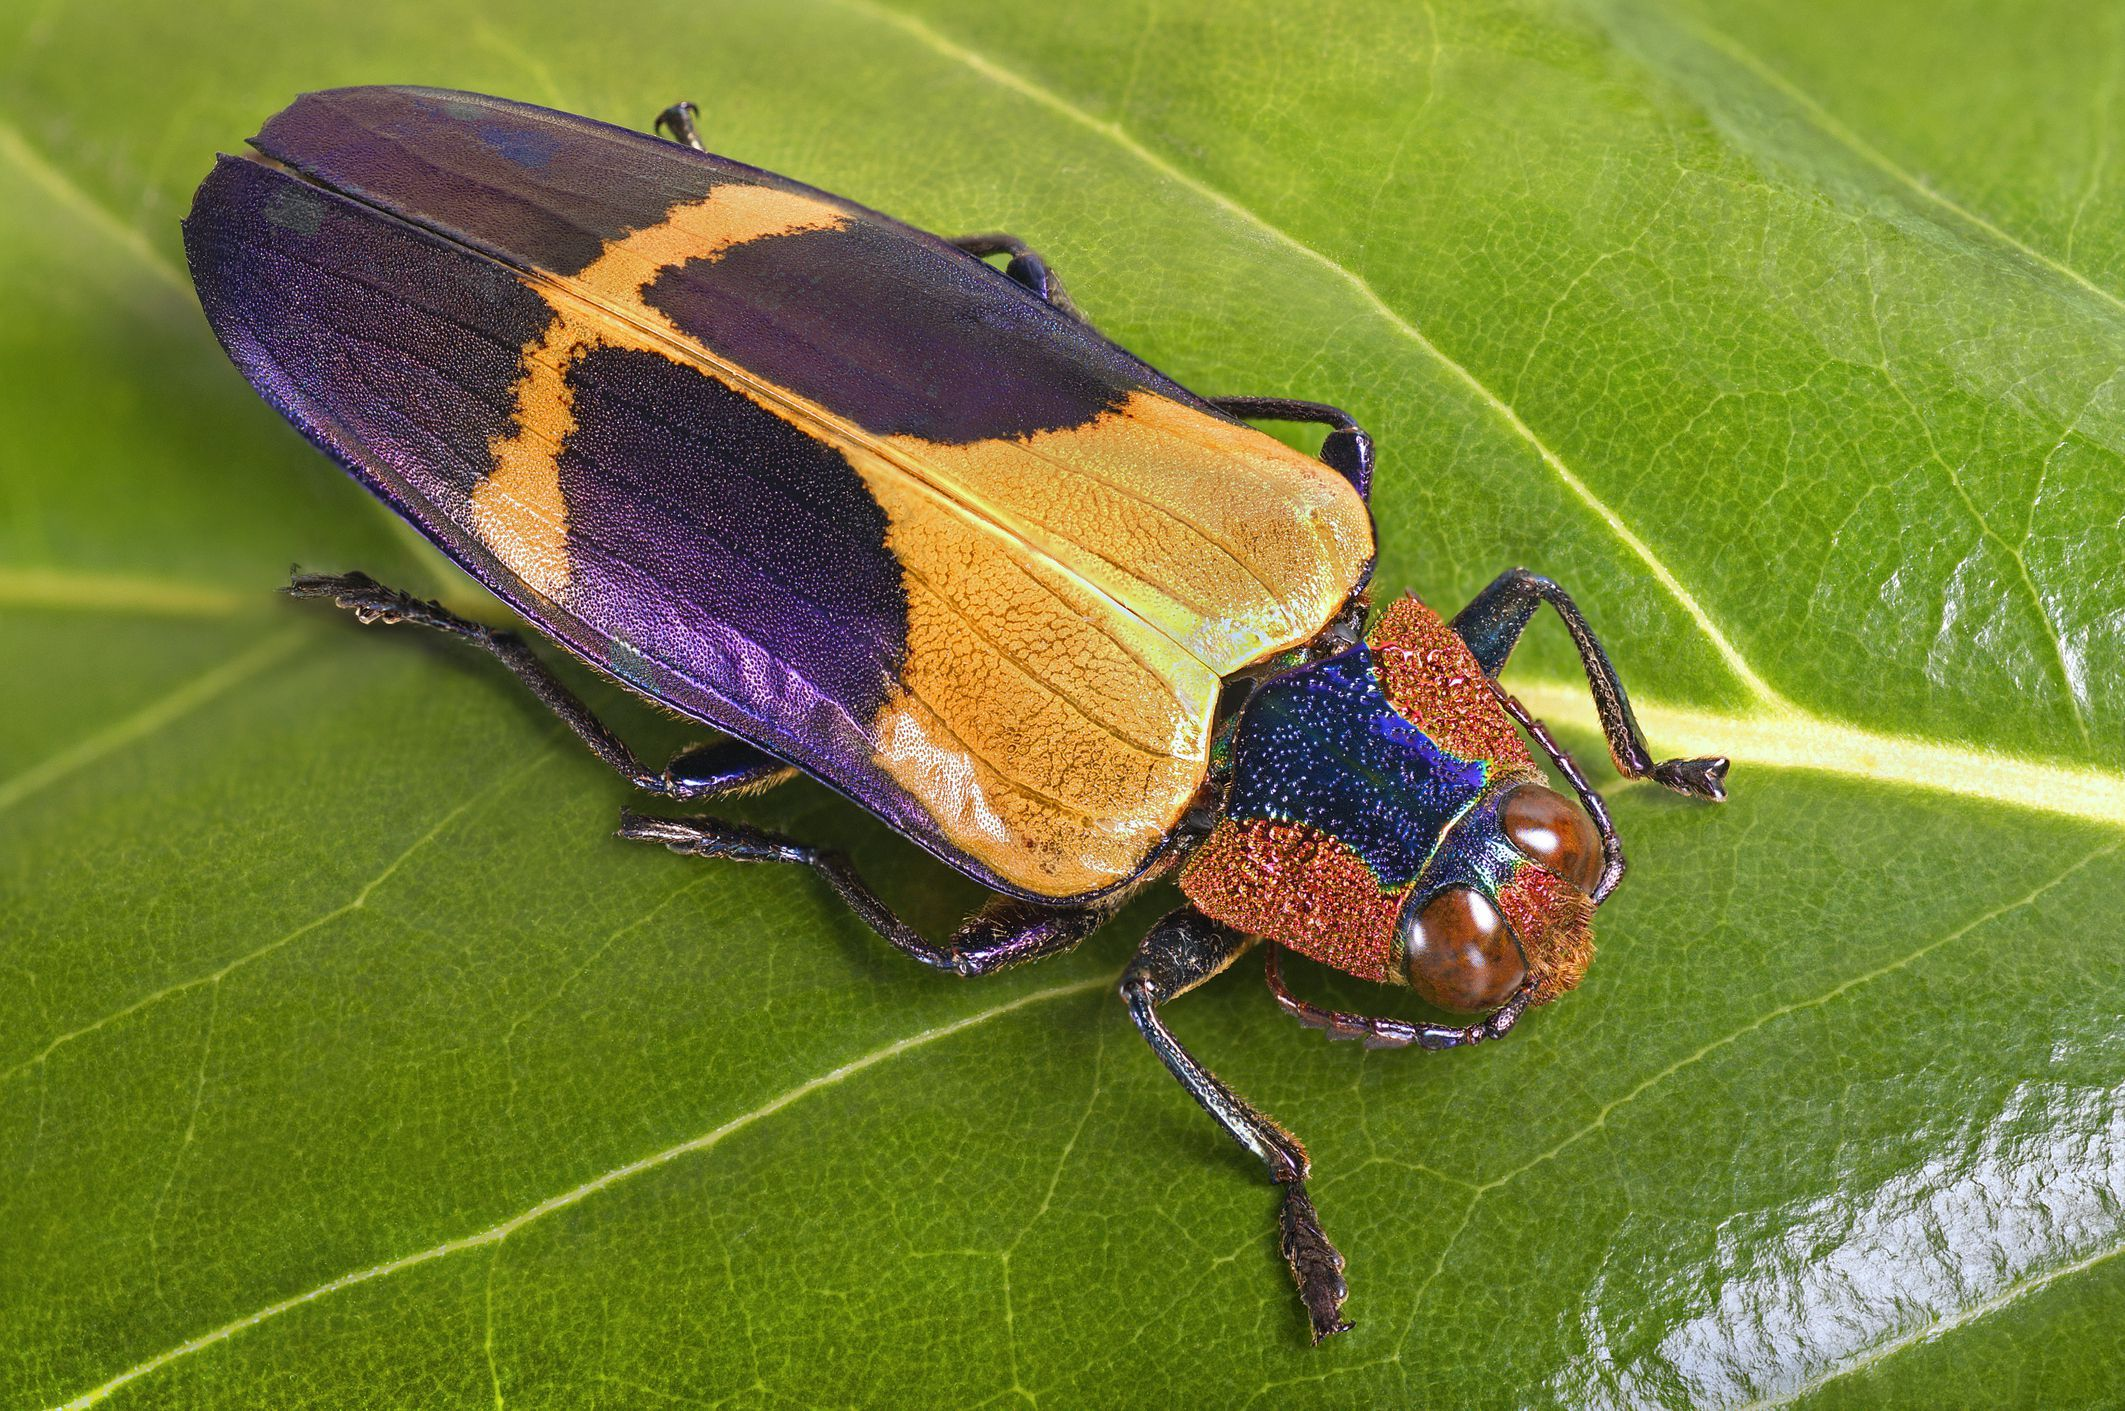 10 Fascinating Facts About Insects Insects Beetle Insect Fun Facts